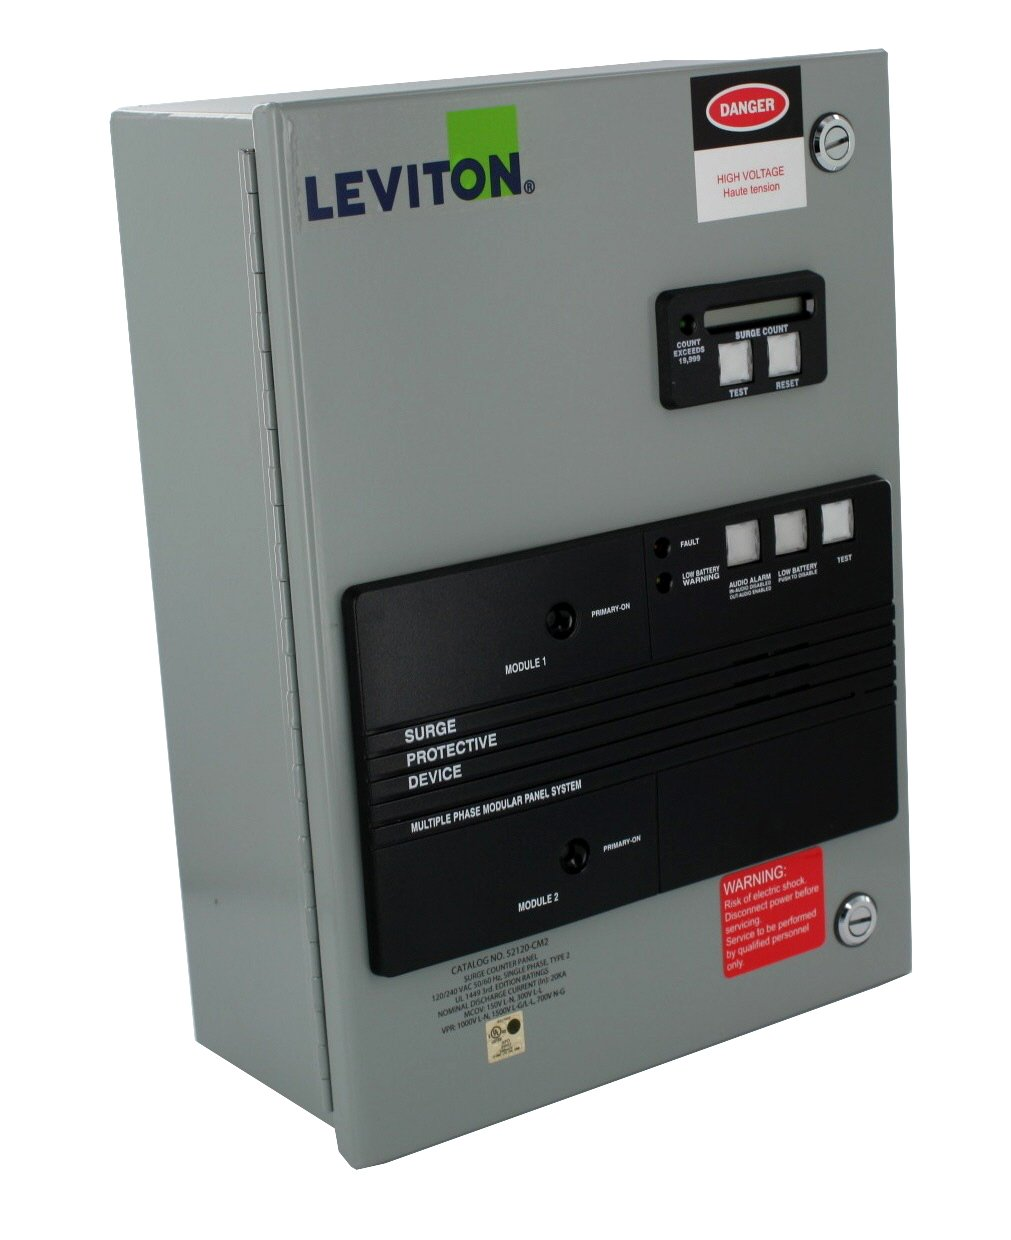 Leviton 52120-CM2 120/240V AC Single-Phase 3-Wire and Ground, Home Automation Model with Surge Counter by Leviton